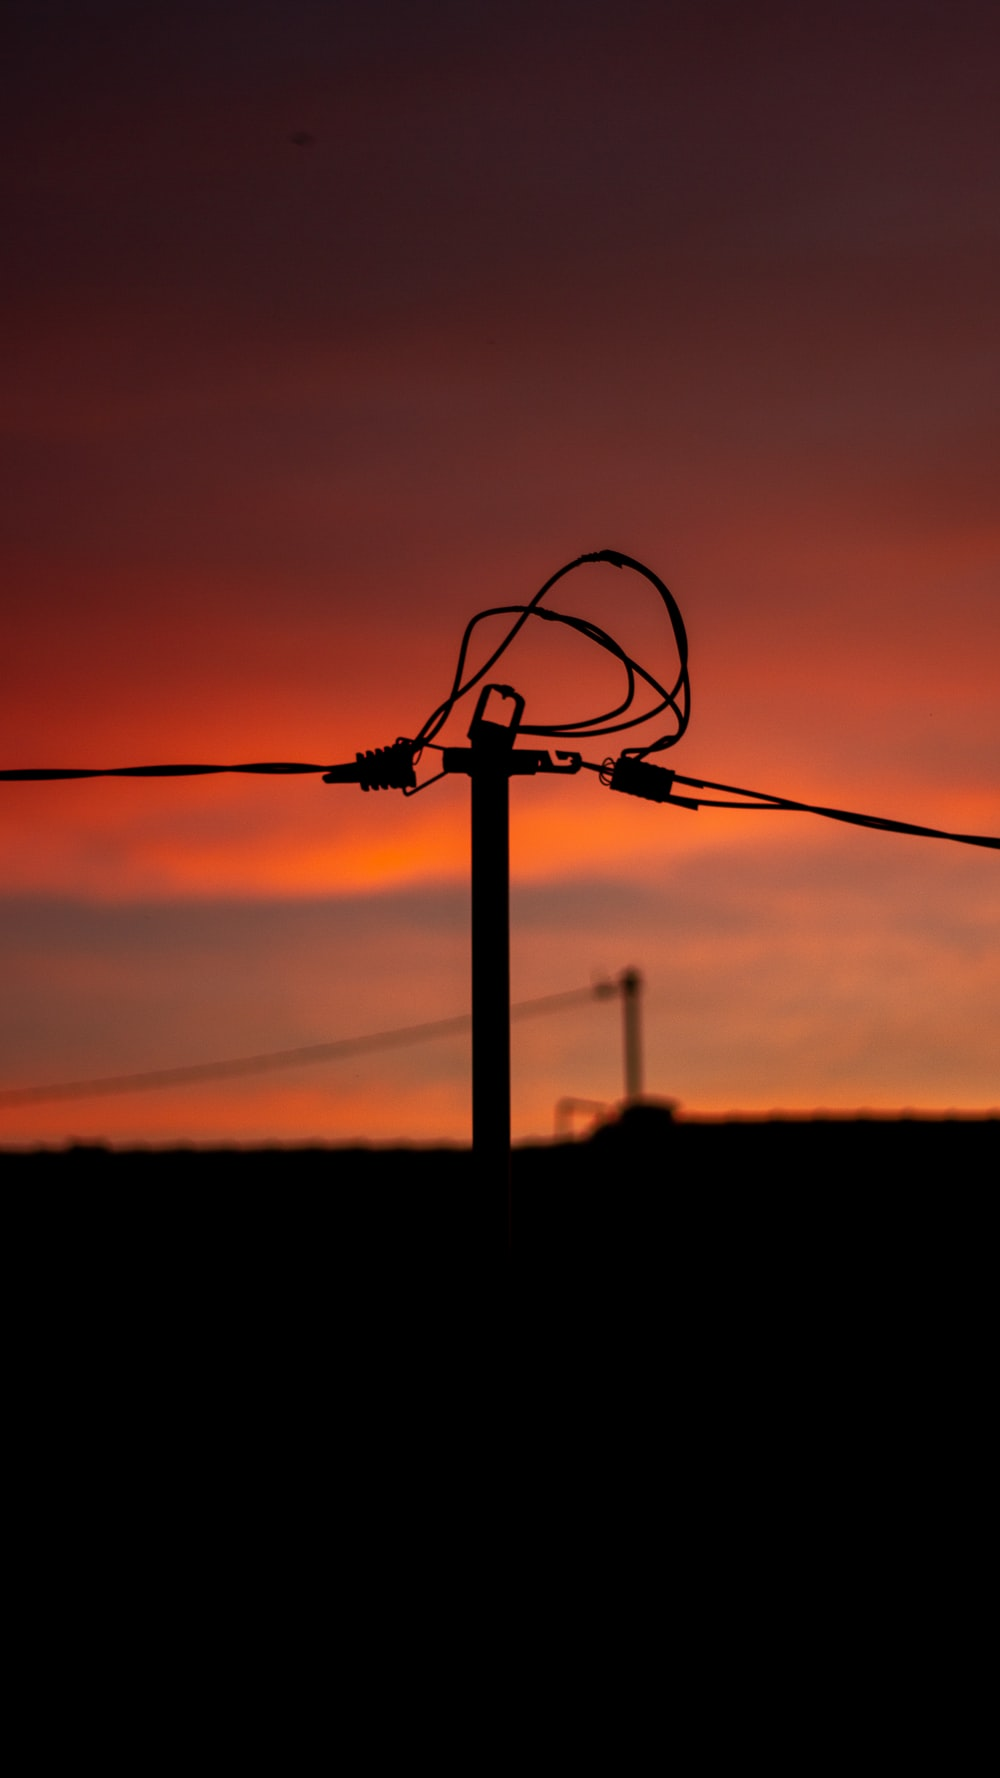 silhouette of a black wire during sunset